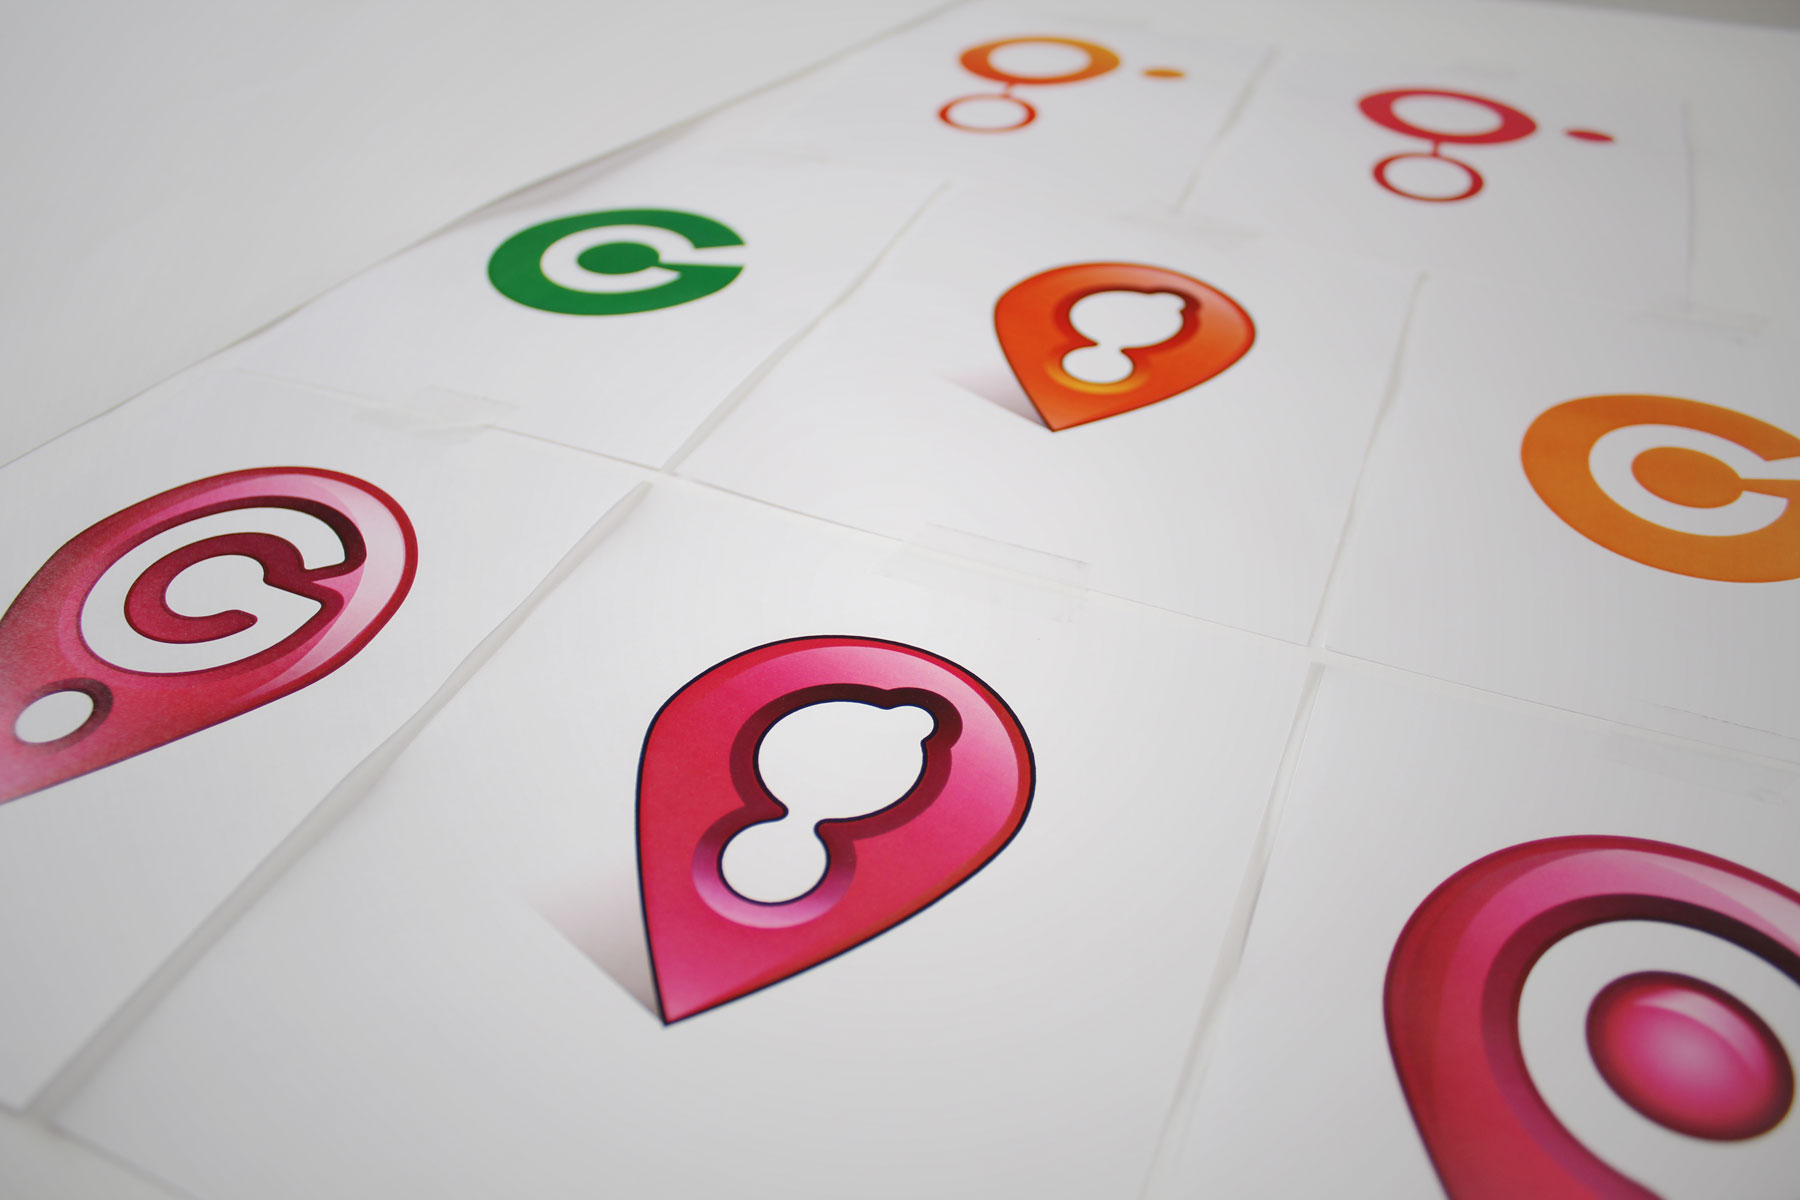 We developed a series of brand icons which brought together the G initial and the idea with a tag or pin device.